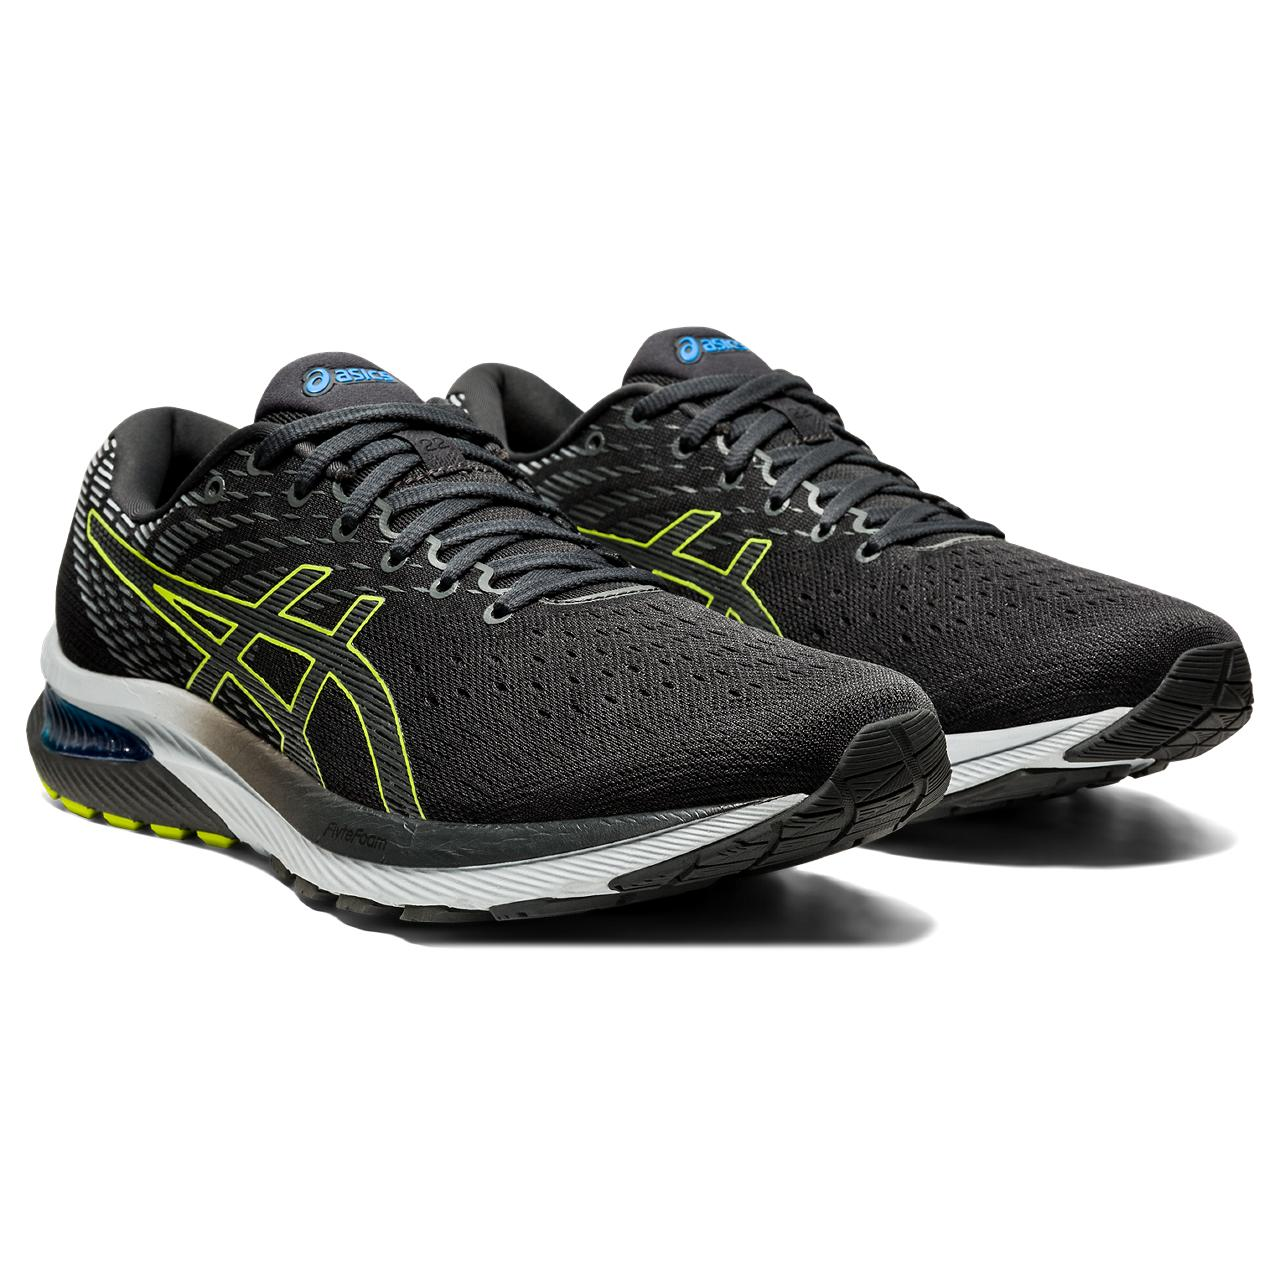 'ASICS' Men's Gel Cumulus 22 - Graphite Grey / Lime Zest